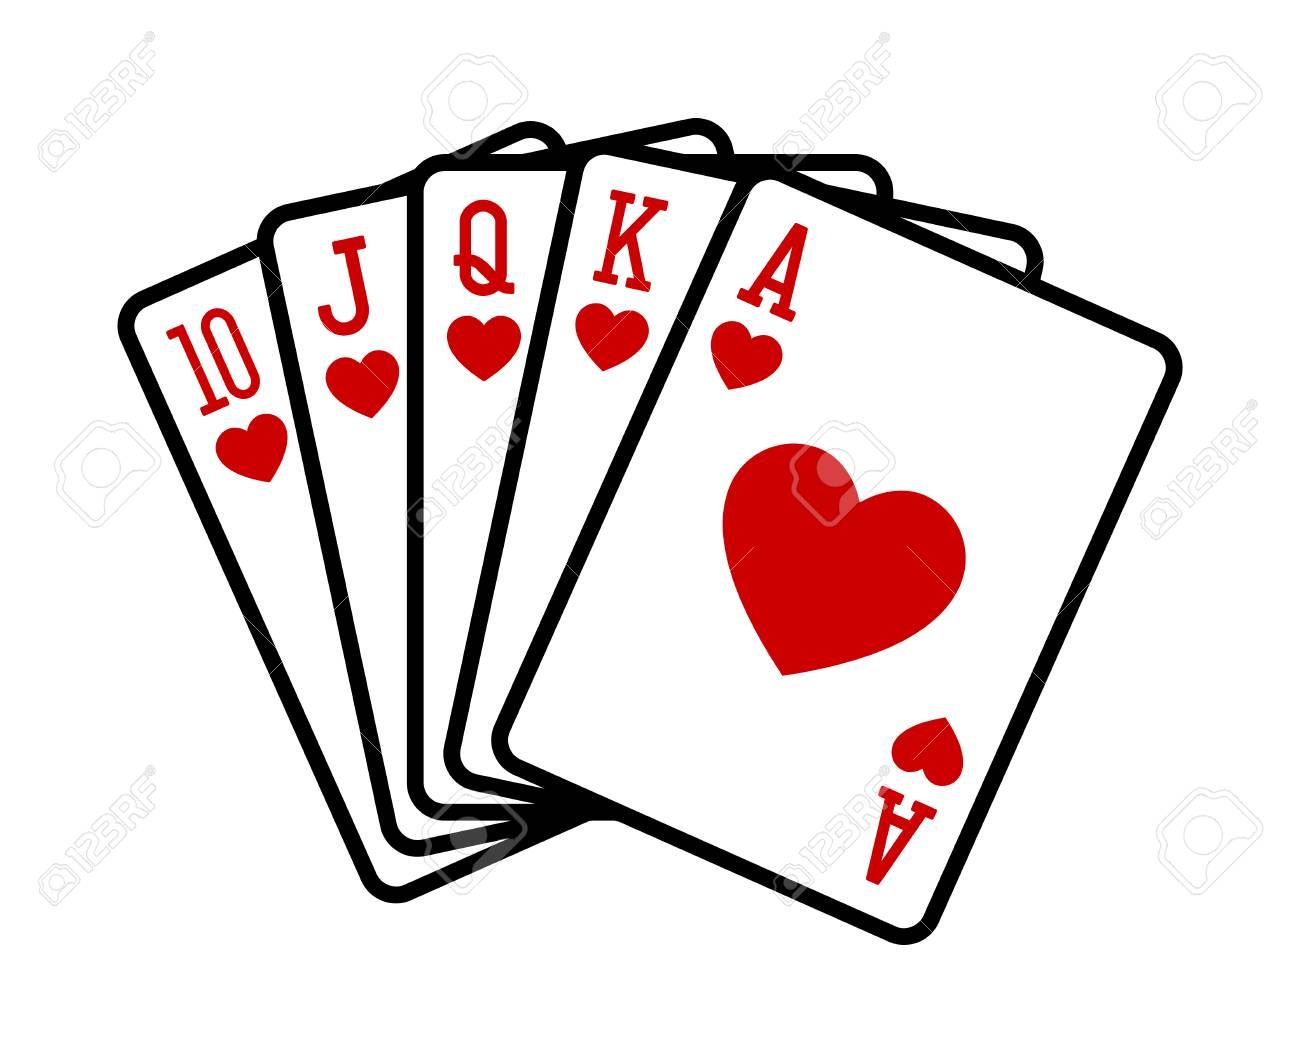 Heart Royal Straight Flush Poker Hand Flat Vector Icon For Casino Royalty Free Cliparts Vectors And Stock Illustration Image 107175280